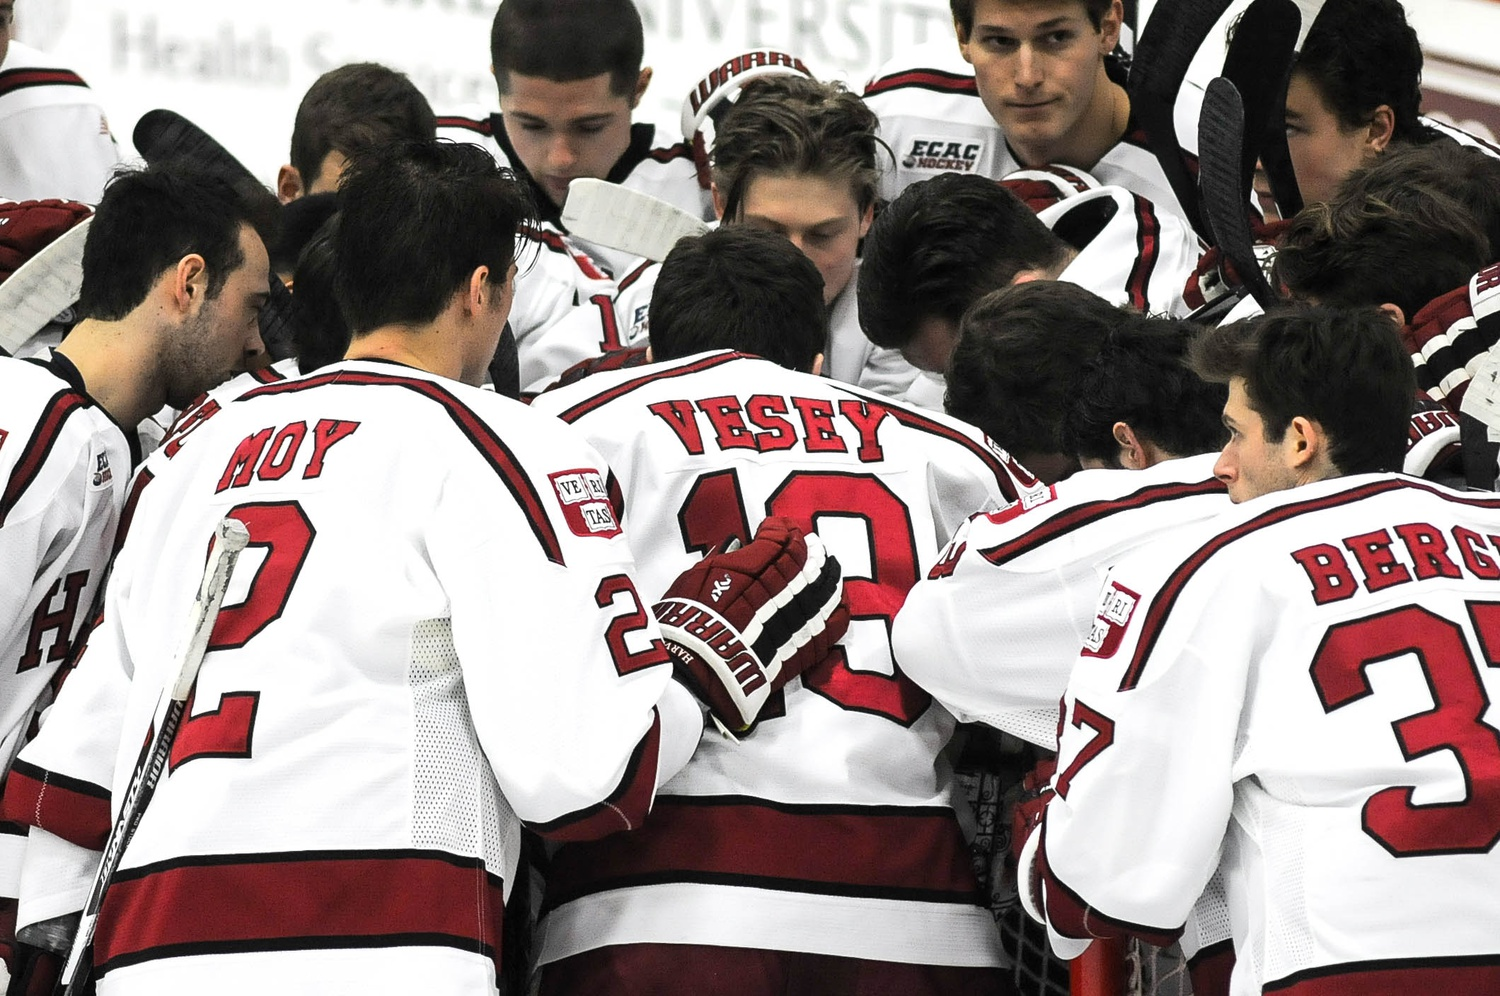 Jan. 15: With the Crimson facing a 1-0 third-period deficit against St. Lawrence, Vesey, shown in later action, scored three times in less than five minutes to give the Crimson a win and the senior his first career hat trick.